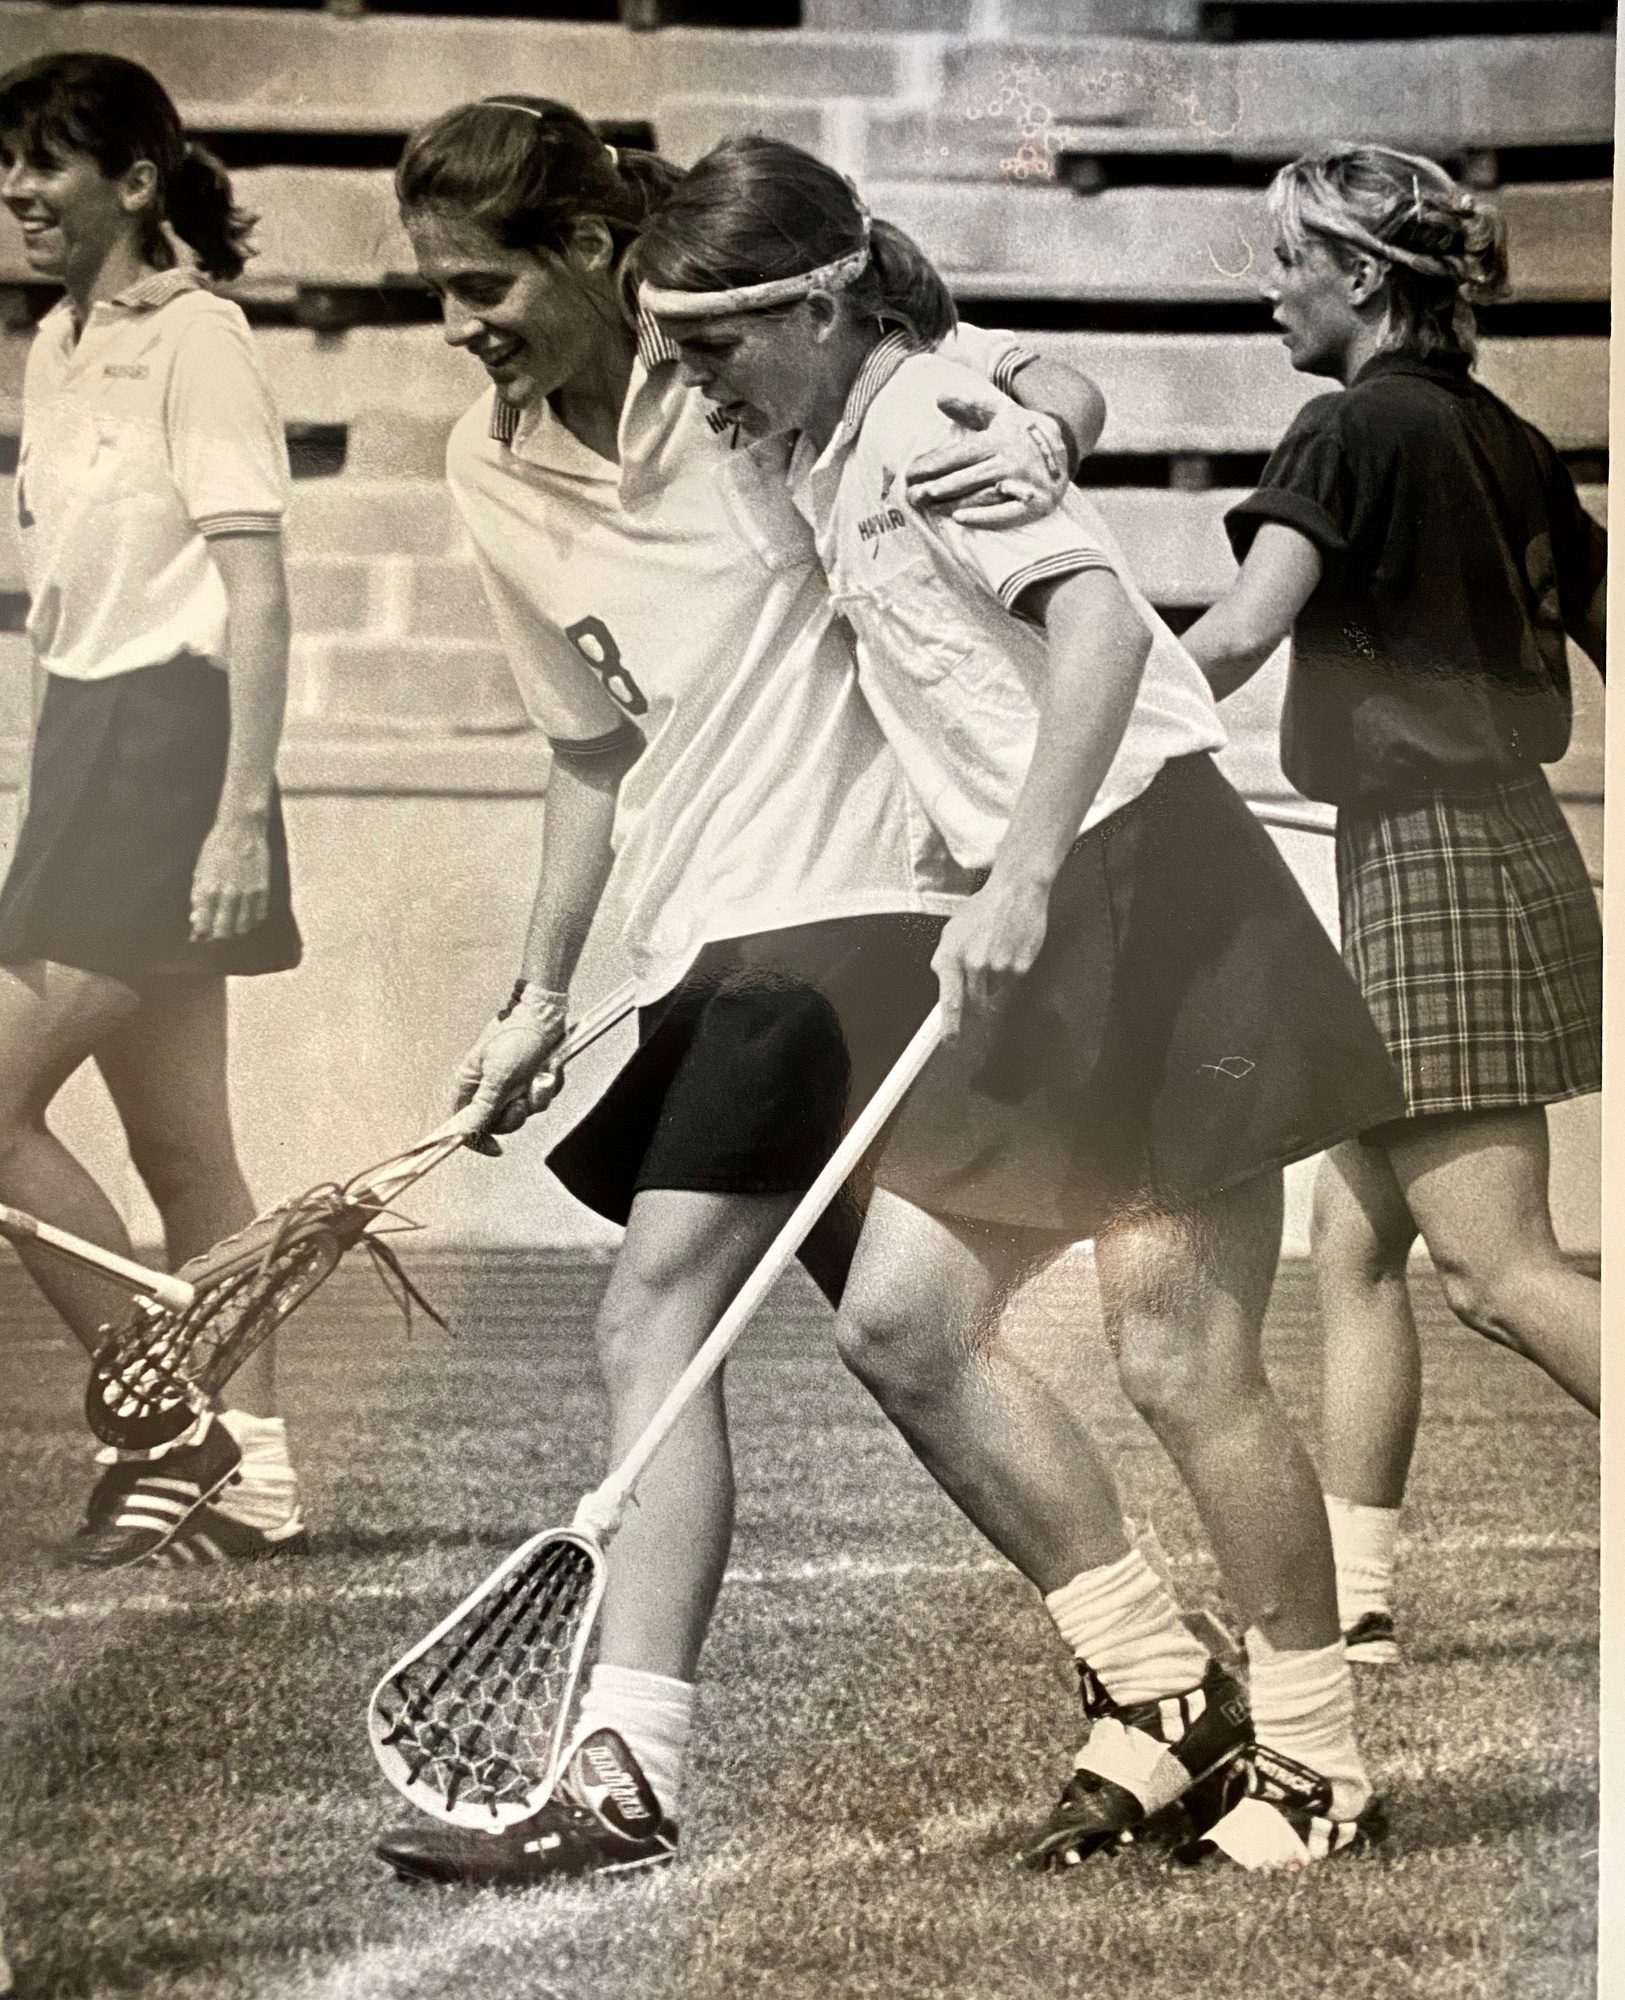 Lynn Frangione '90 and Char Joslin '90 embrace after a Harvard goal in the NCAA final against Maryland.